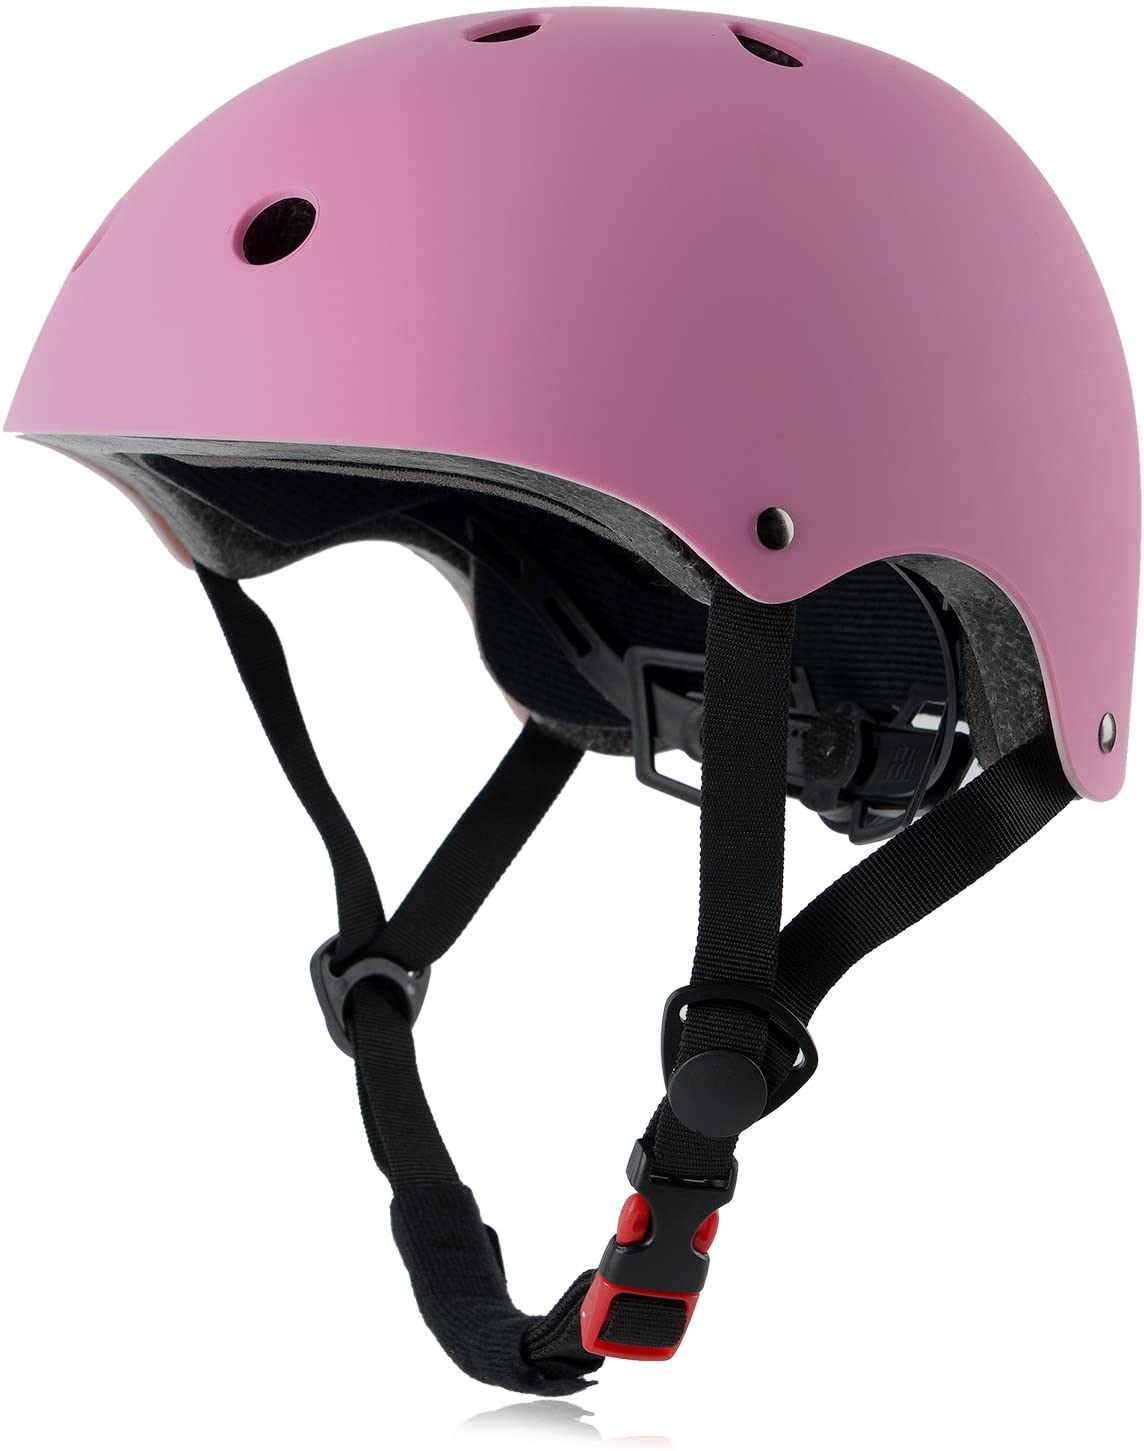 Kids Bike Helmet, CPSC Certified, Adjustable and Multi-Sport, from Toddler to Youth, 3 Sizes